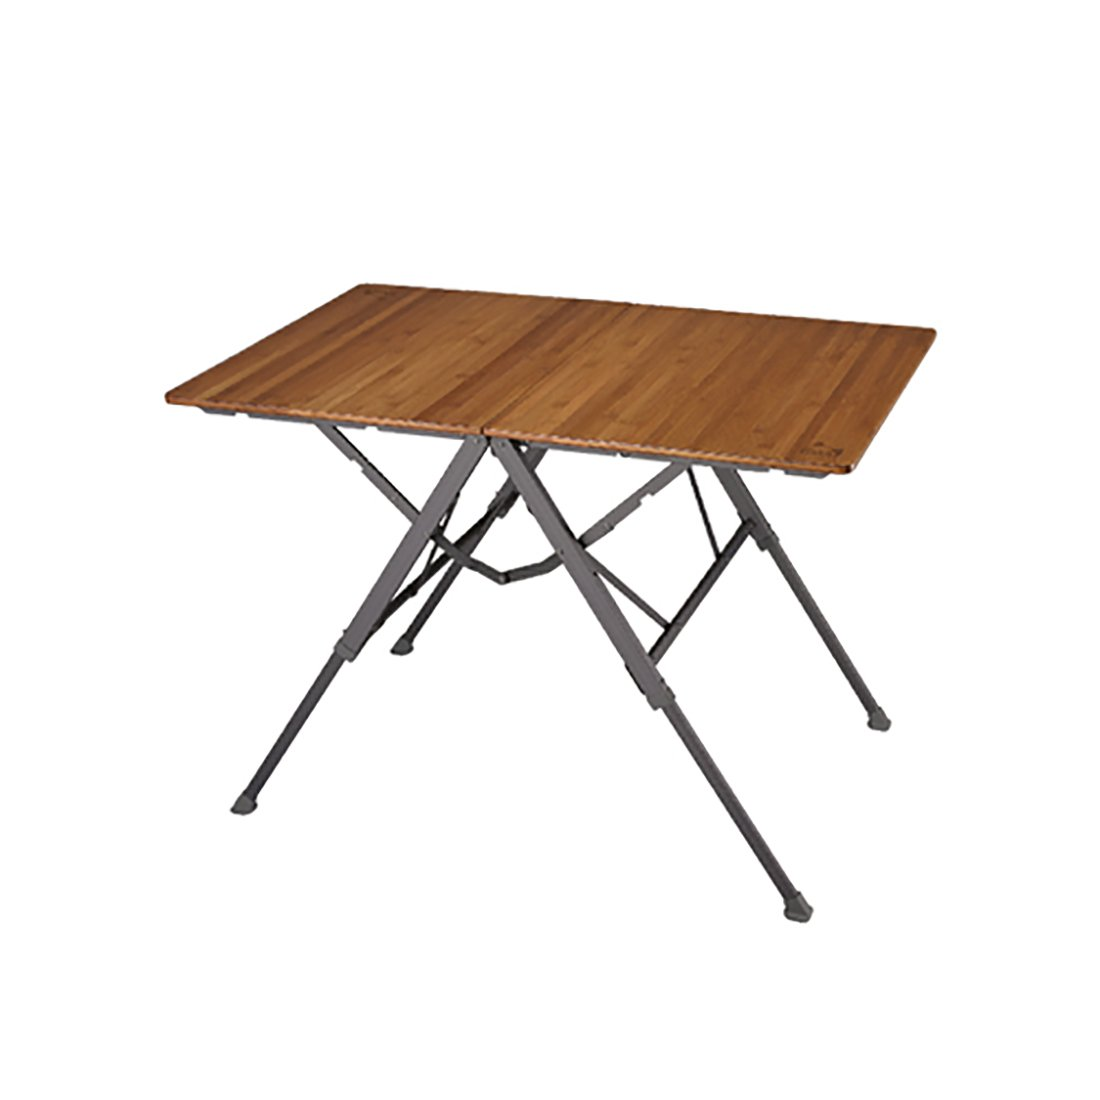 Bamboo one action table M by Kovea